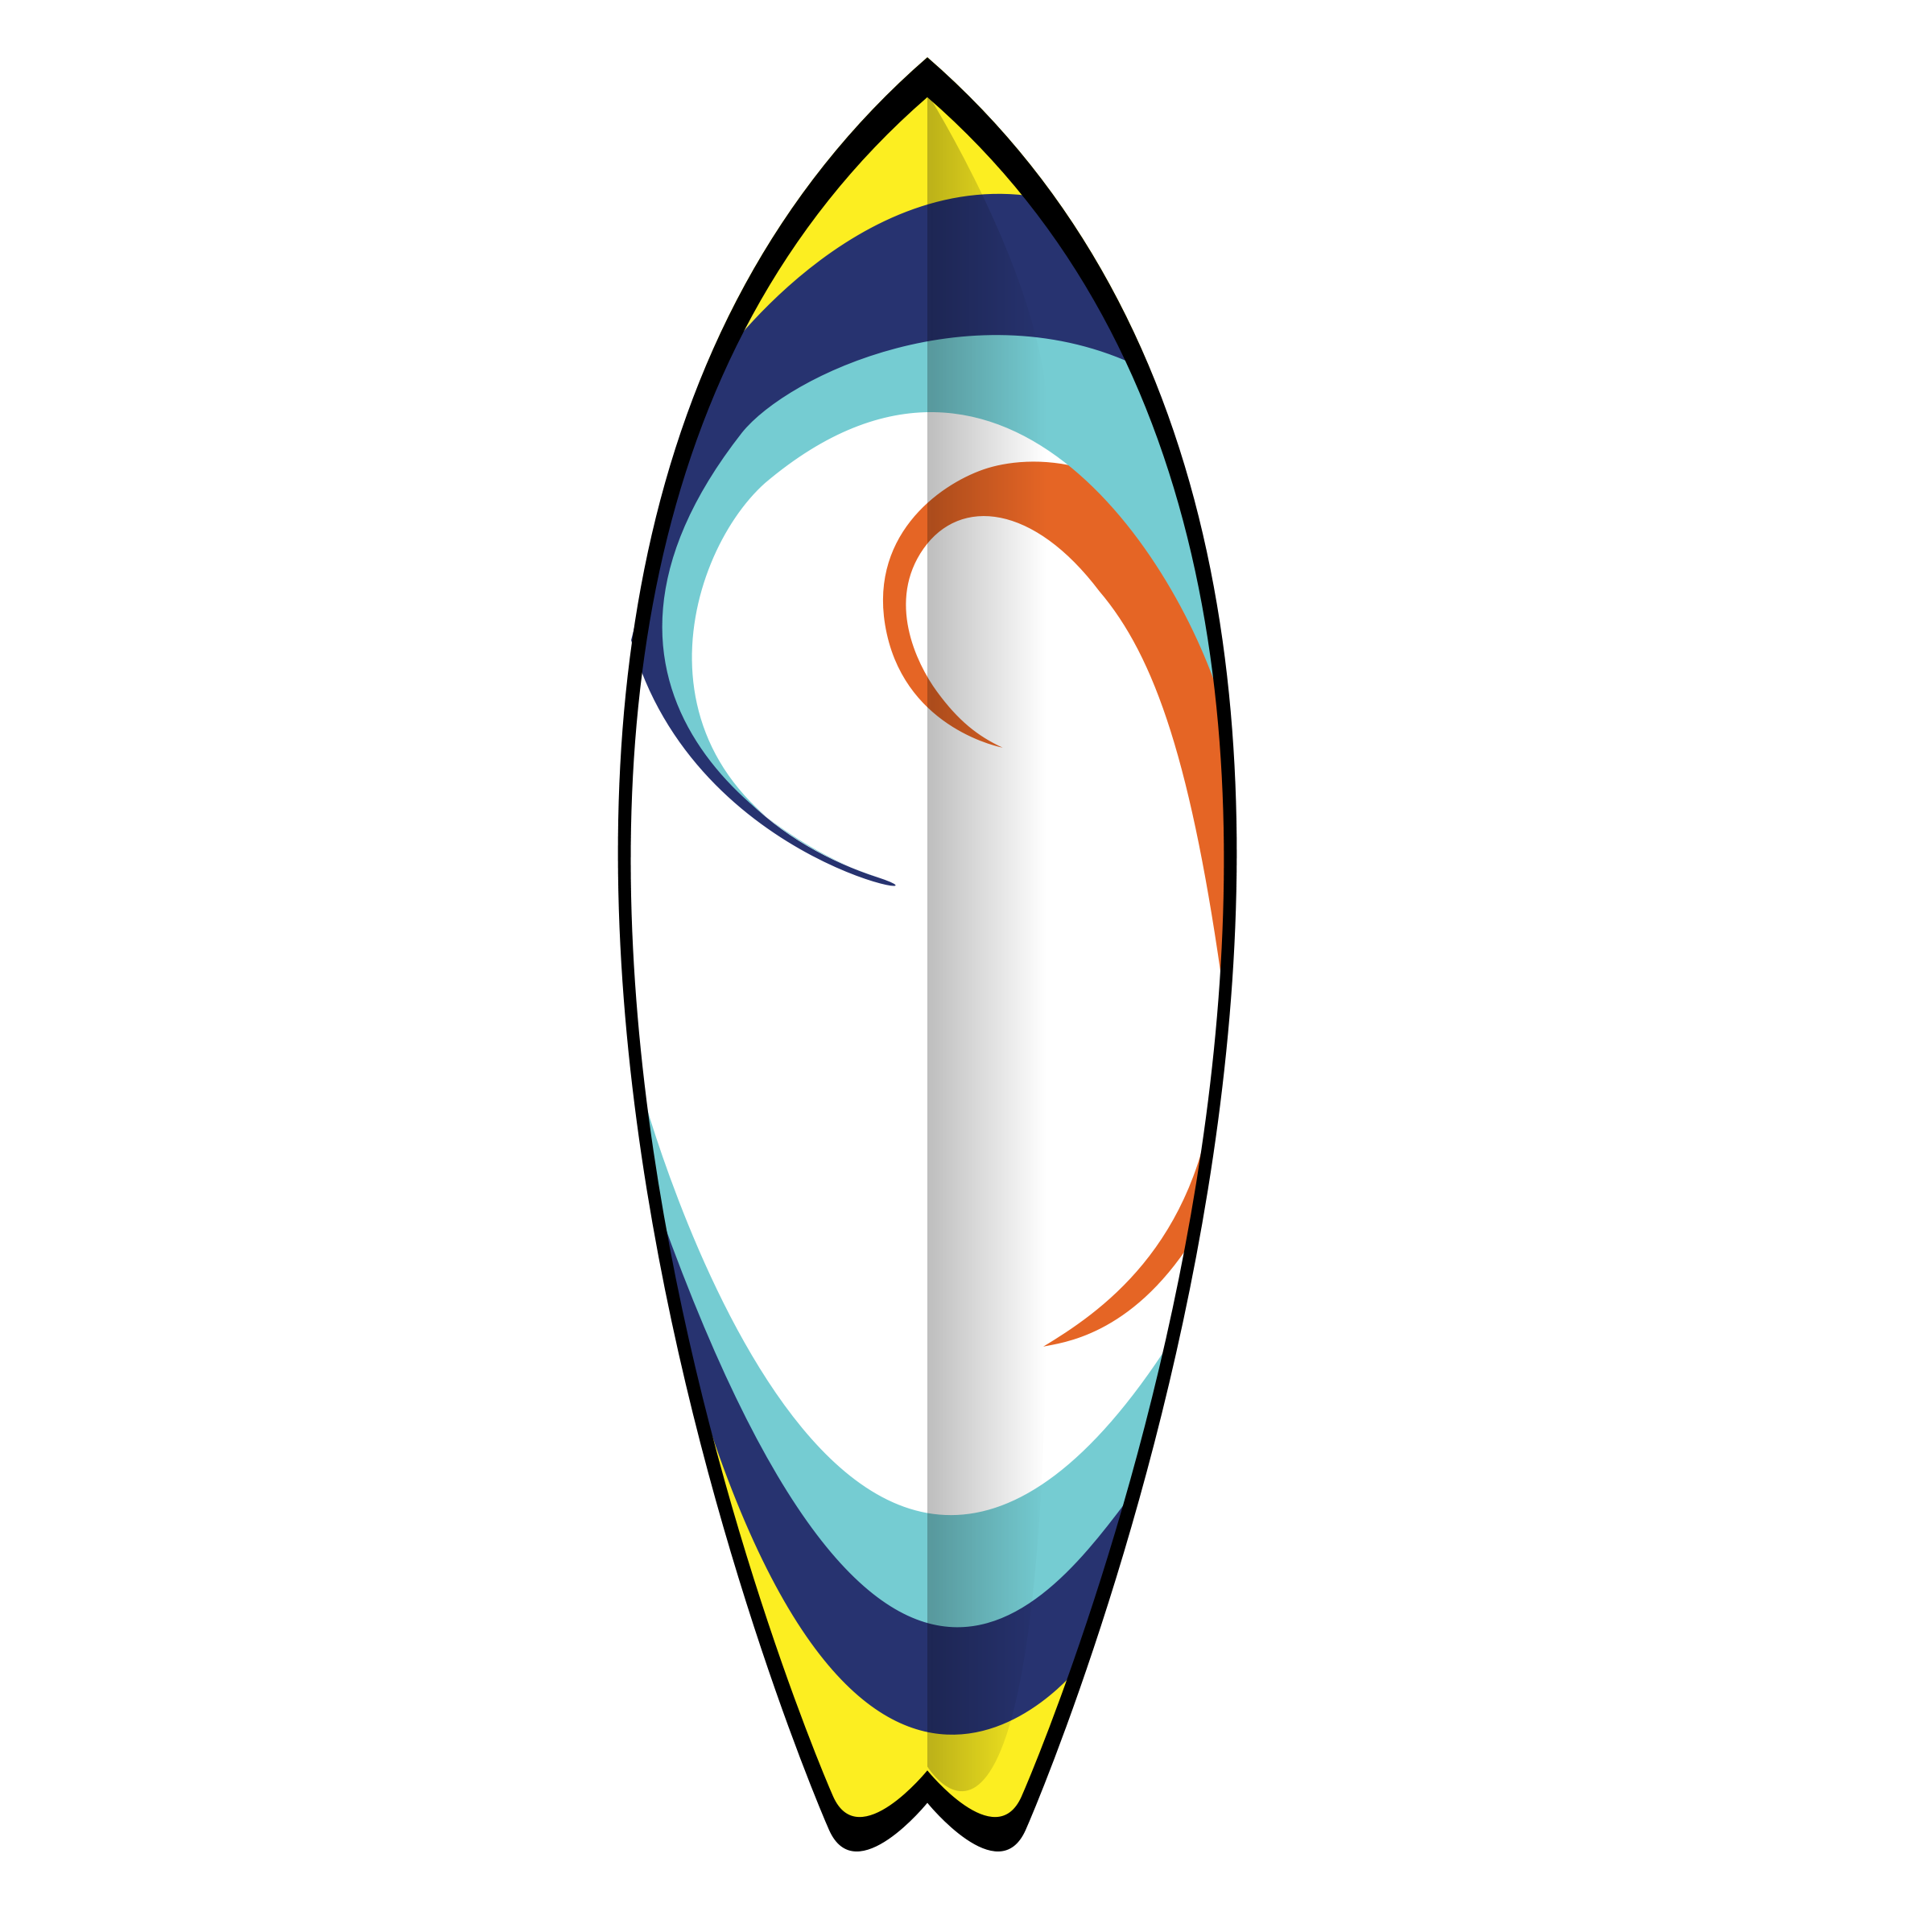 Surfboard Clipart Clipart | Clipart Panda - Free Clipart Images